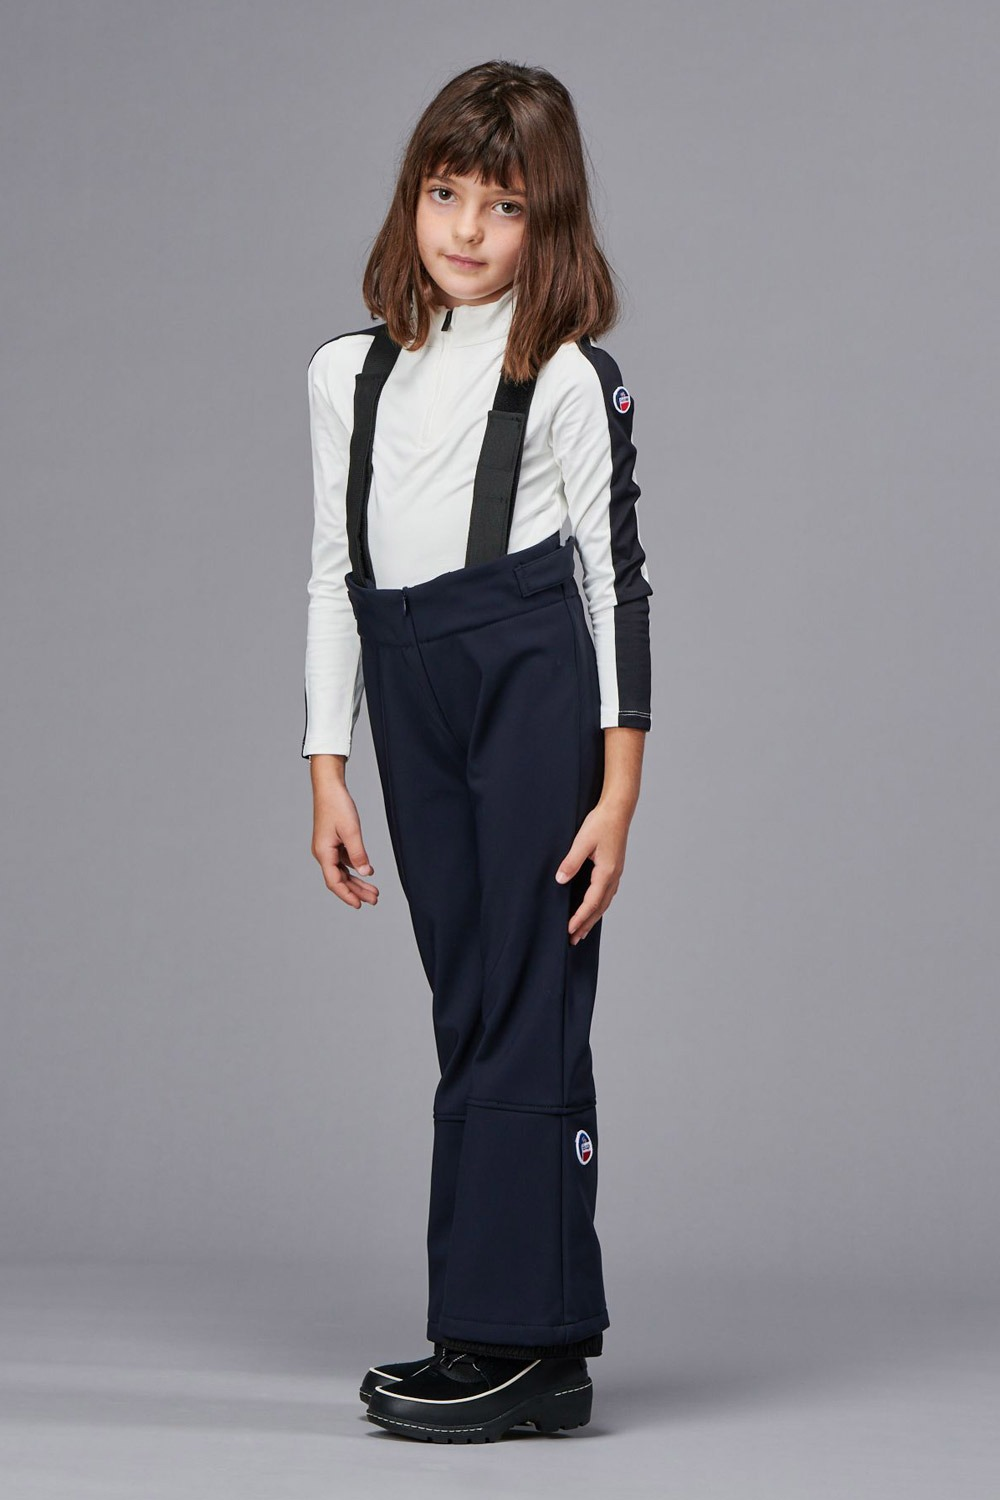 2021 퓨잡 유스 티피 JR 팬츠  FUSALP_[2+2/5]_YOUTH TIPI JR PANTS_DARK BLUE_BZF5002BU